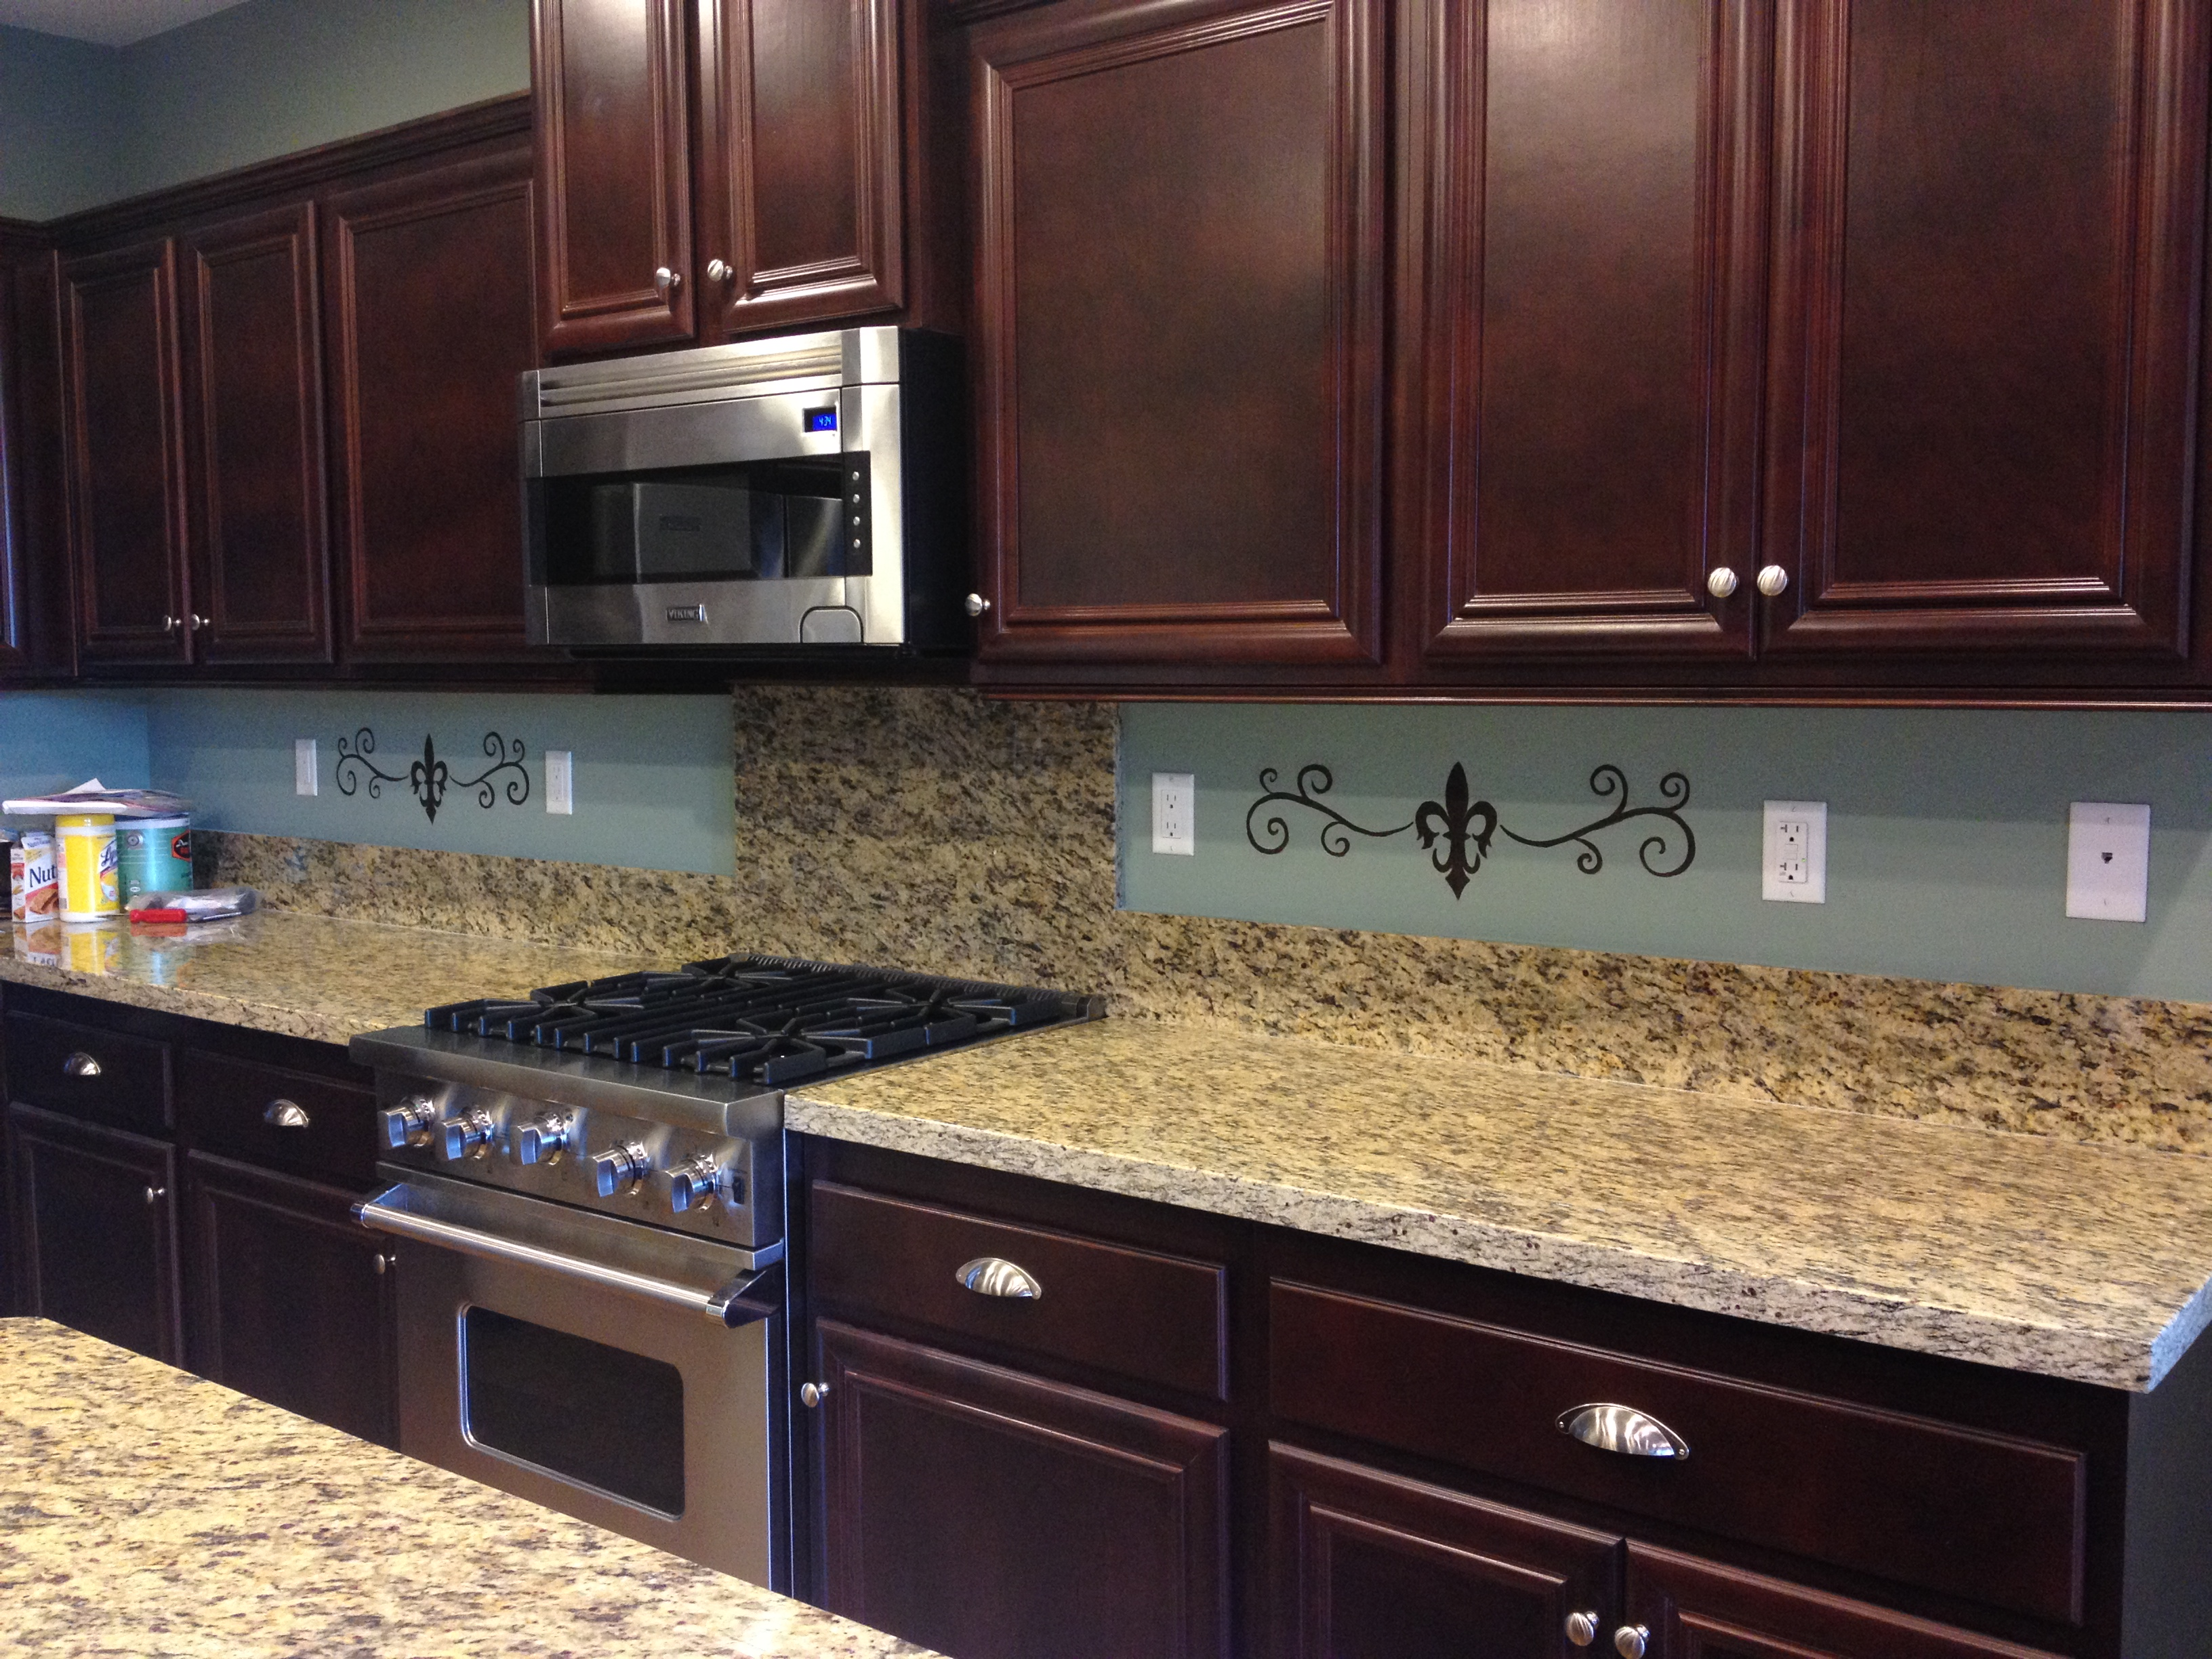 Scrolls on backsplash